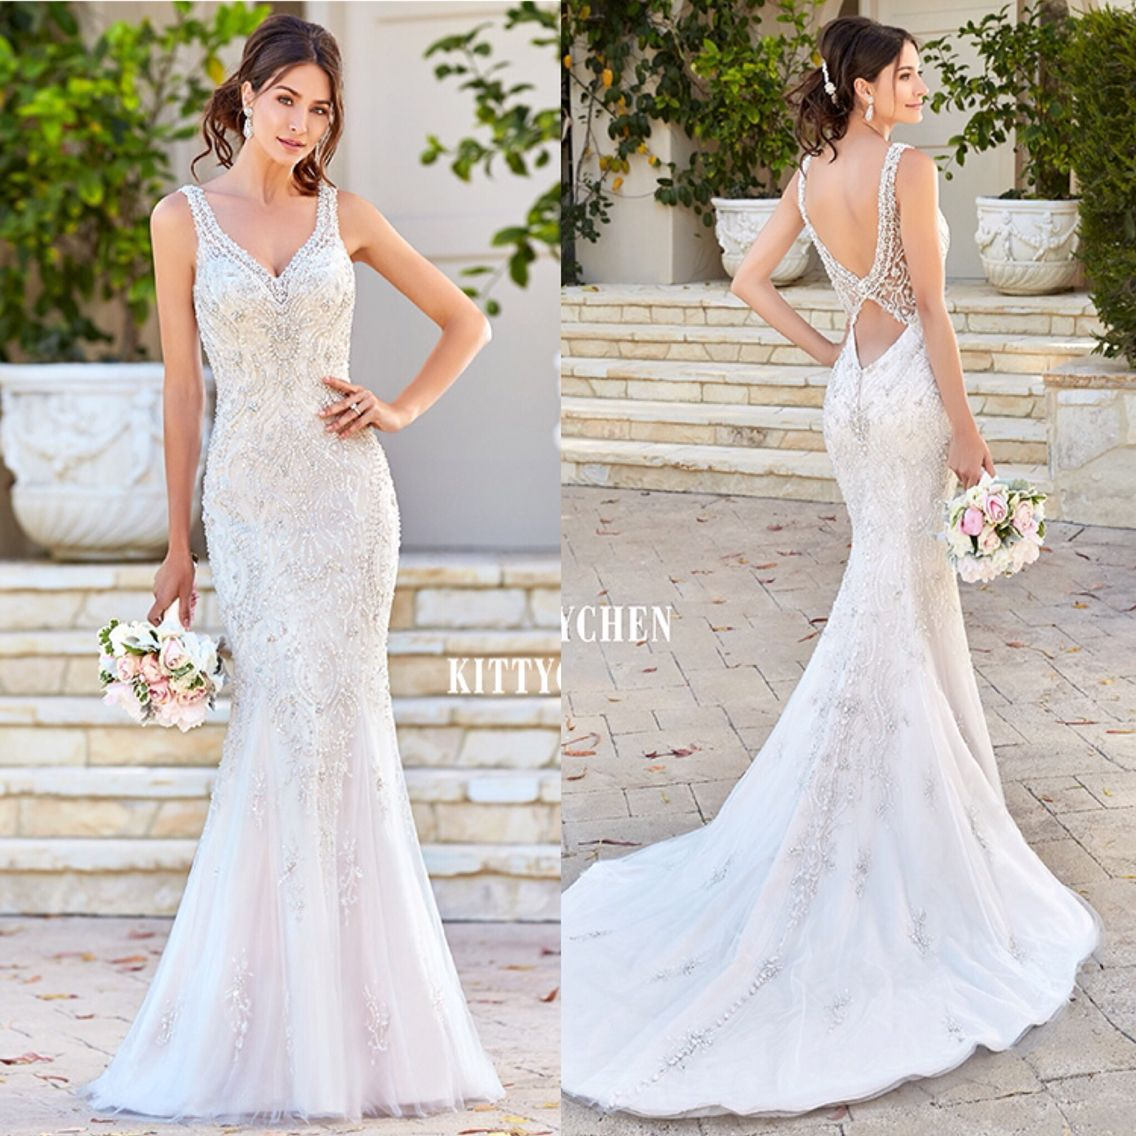 New from Kitty Chen. Now available at Mia Bella. #miabellacouture ...